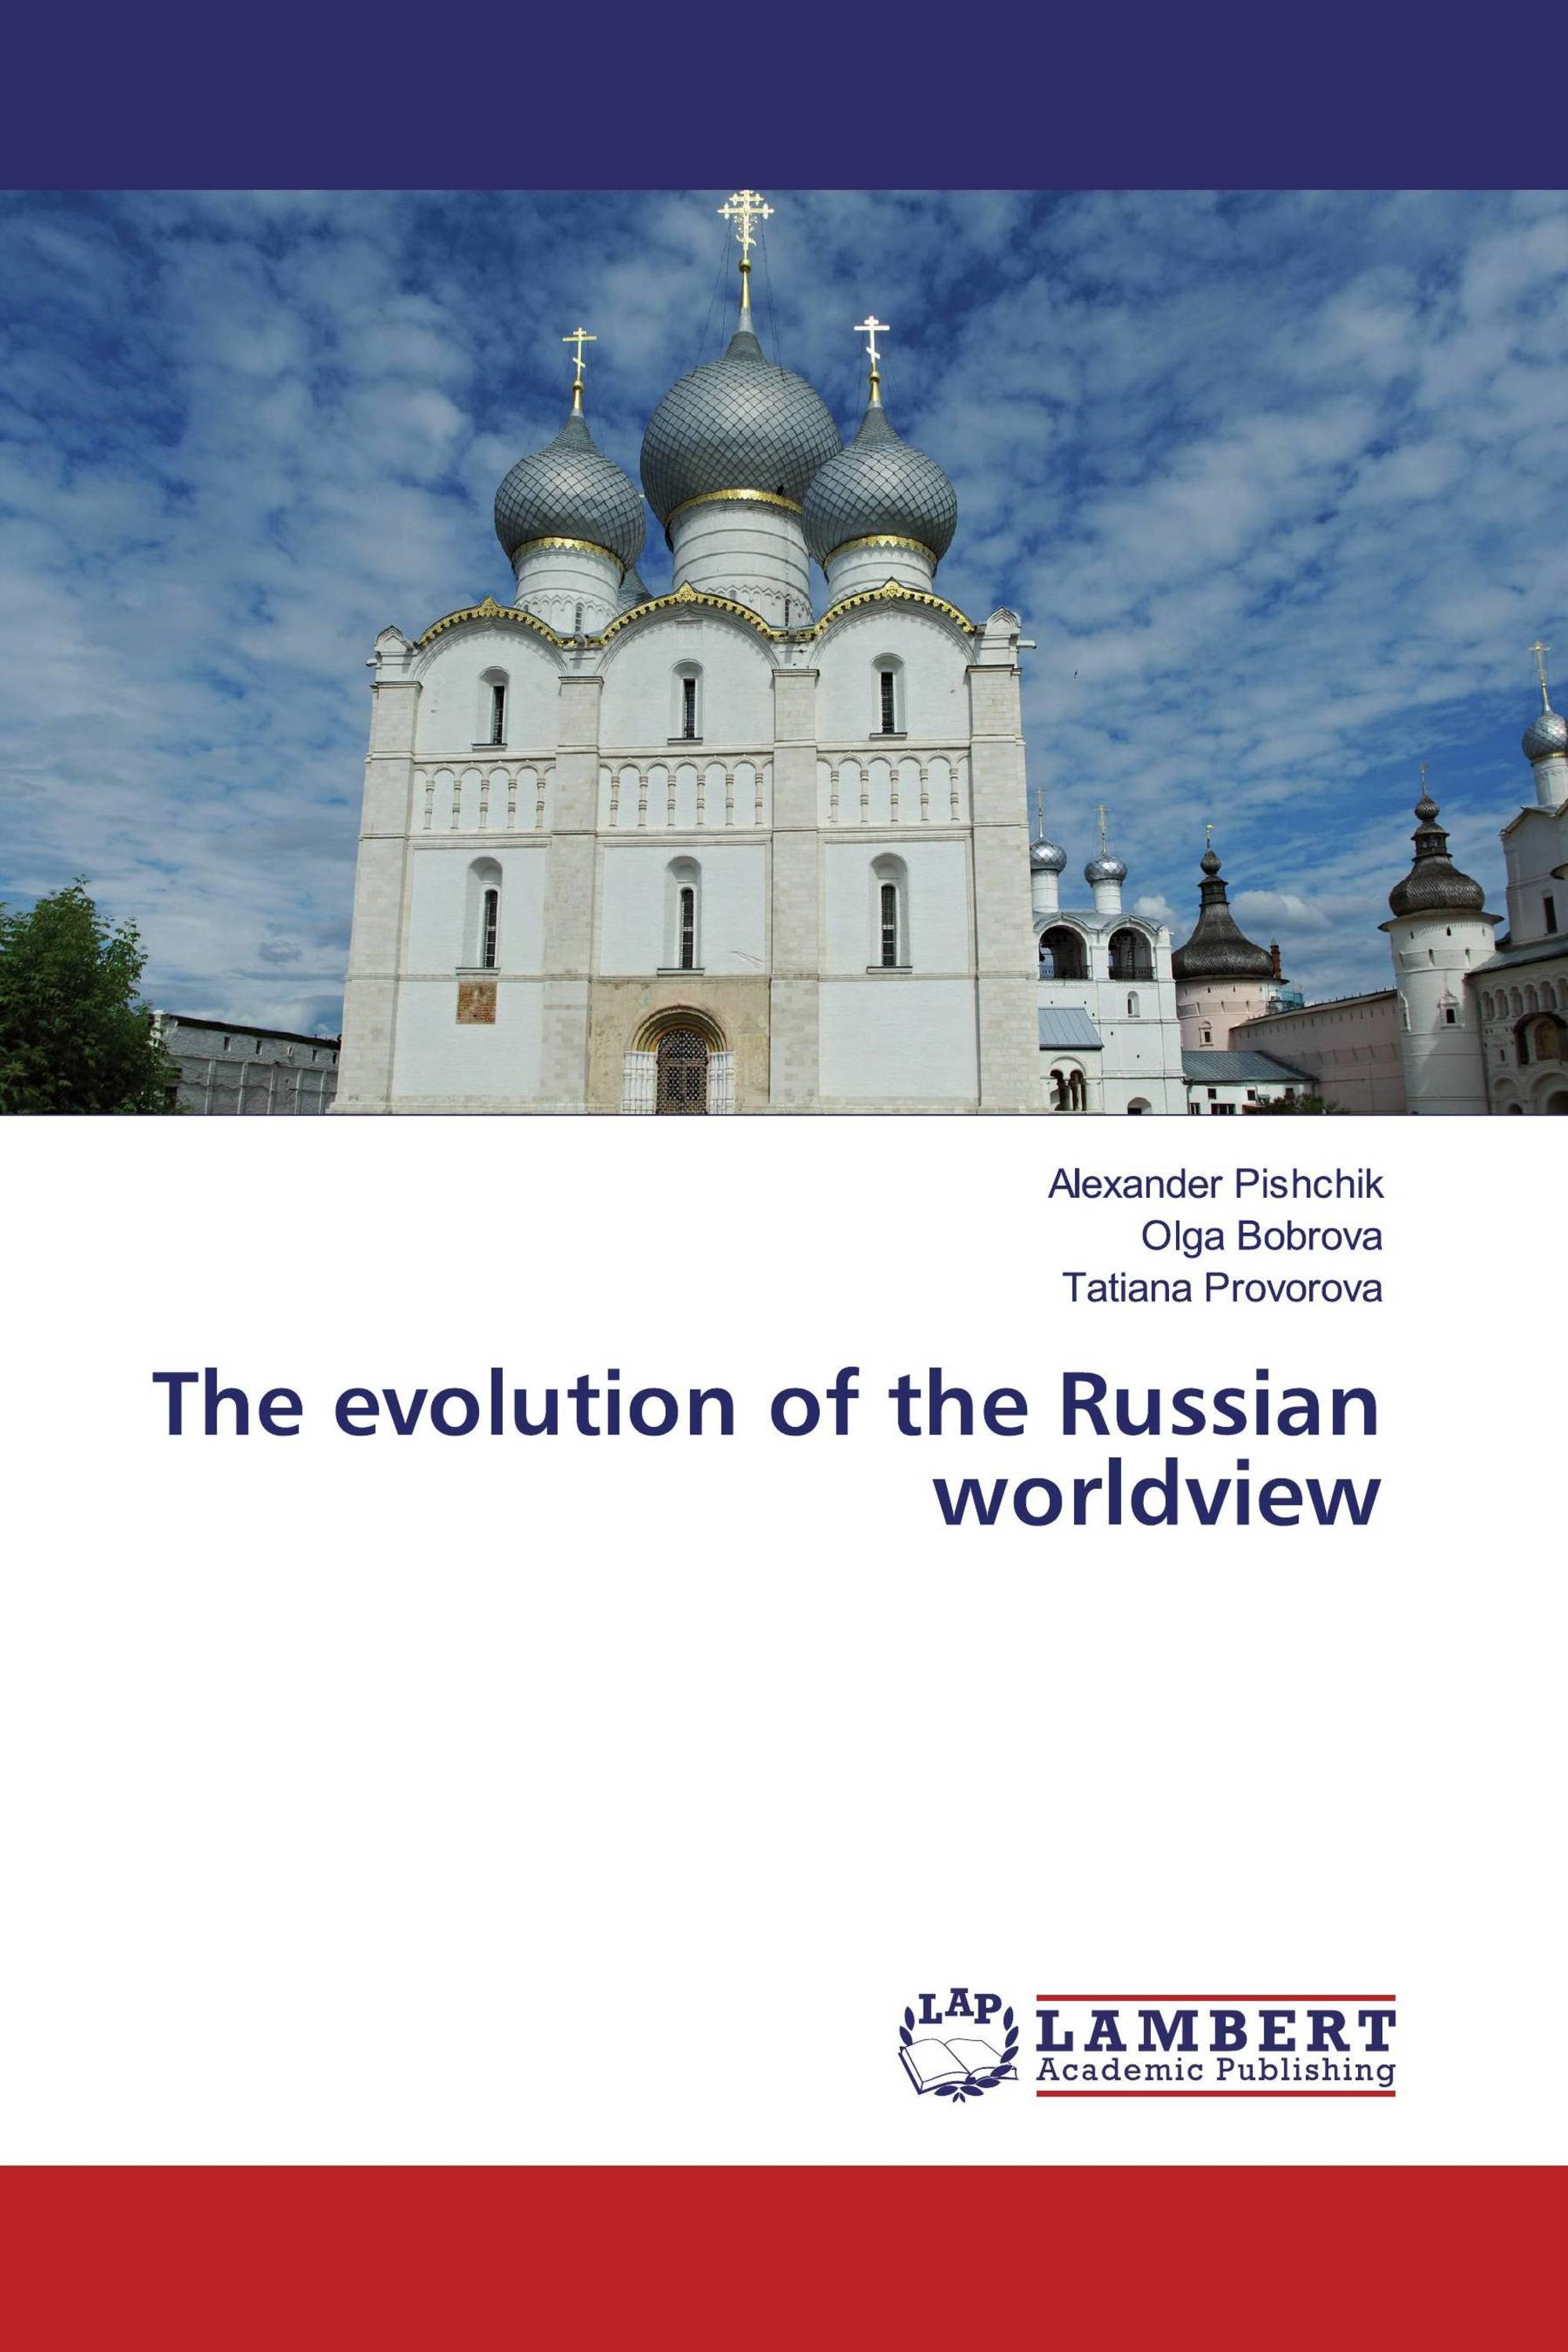 The evolution of the Russian worldview